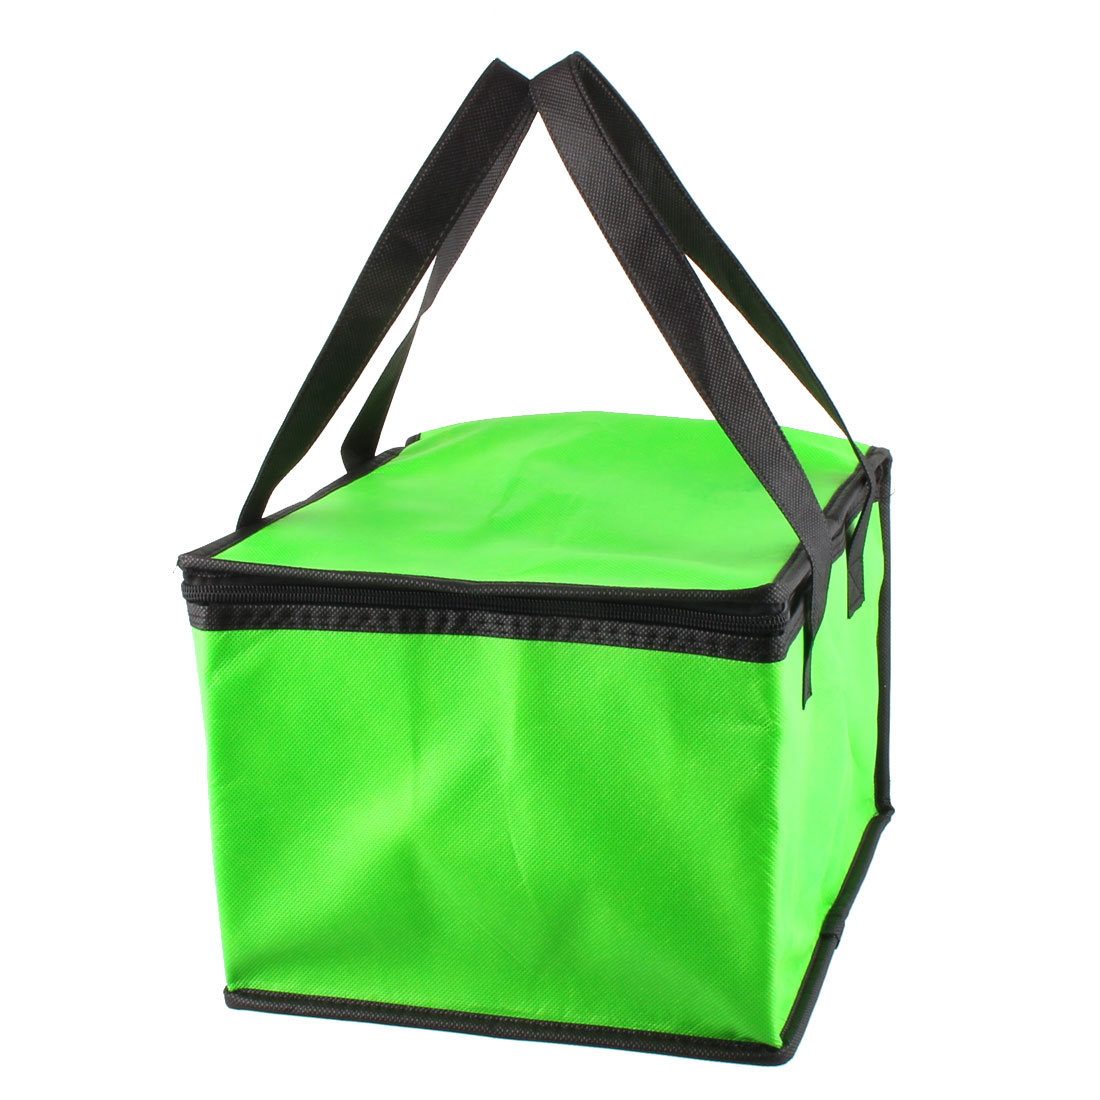 "Non-Woven Fabric 10"" Length Insulated Thermal Lunch Cooler Tote Bag"